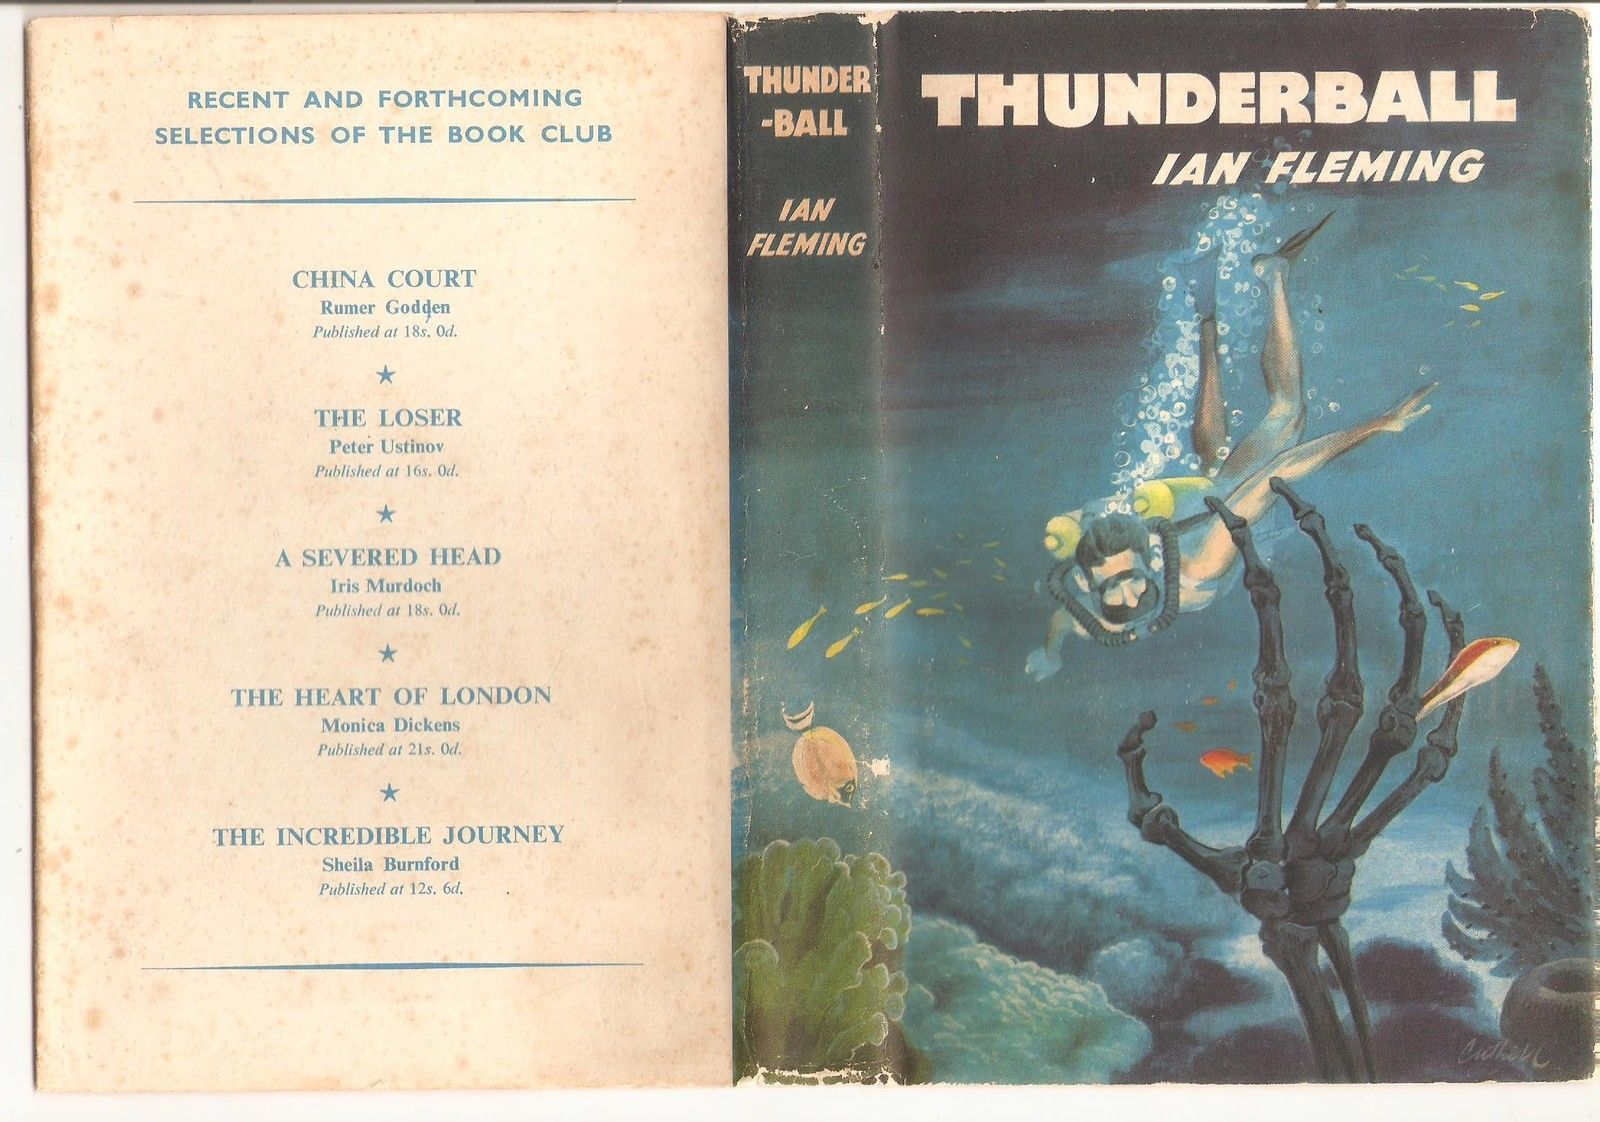 Ephemera from the James Bond Film and Book - Thunderball